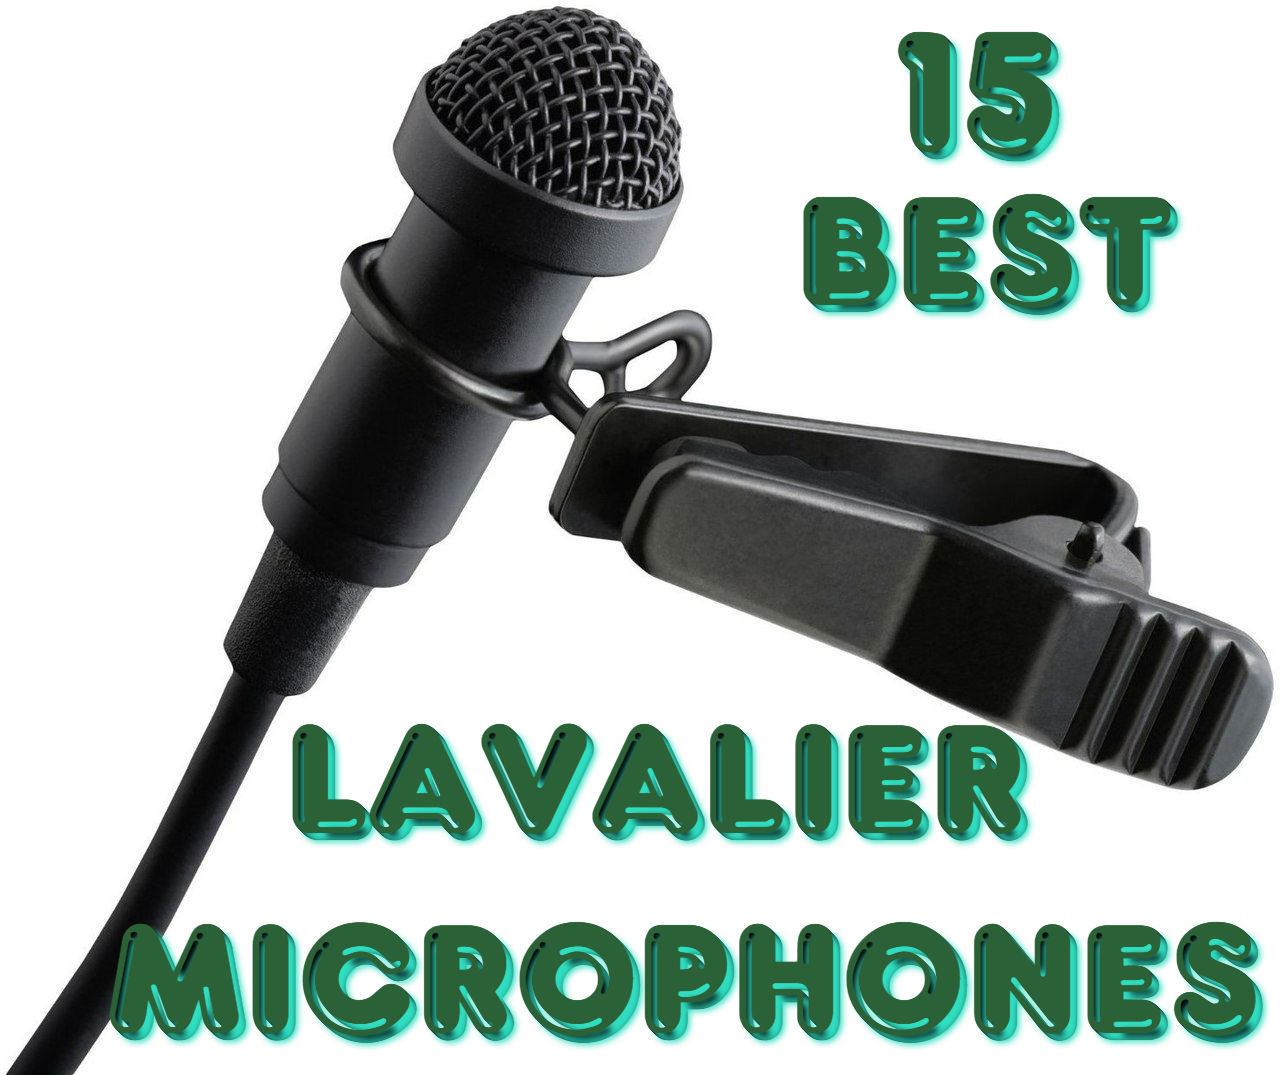 15 Best Lavalier Microphones Total Review Microphone Top Gear Mono Headset Jack Wiring Classification Of Is Complex They Are Distinguished By The Type Conversion To Dynamic And Condenser Can Be Widely Or